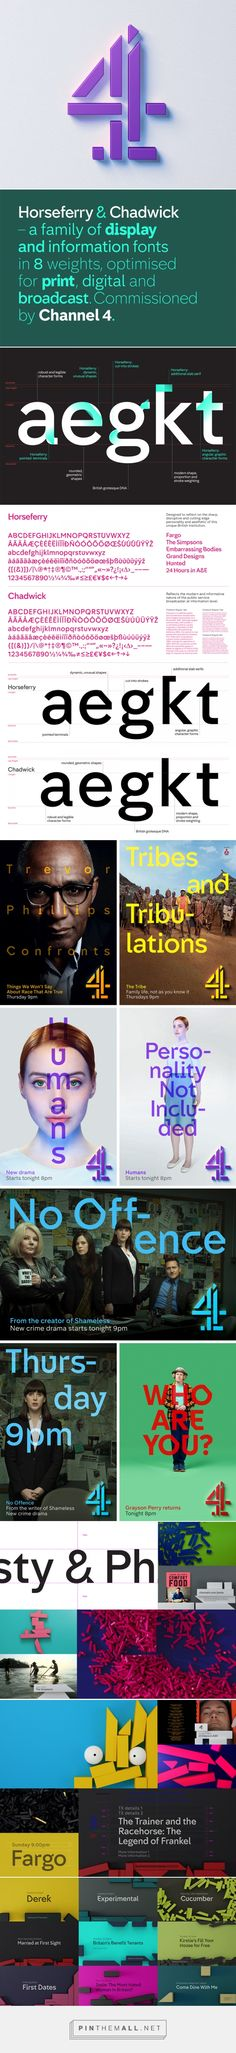 Brand New: New Identity and On-air Package for Channel 4 led by 4creative - created via http://pinthemall.net